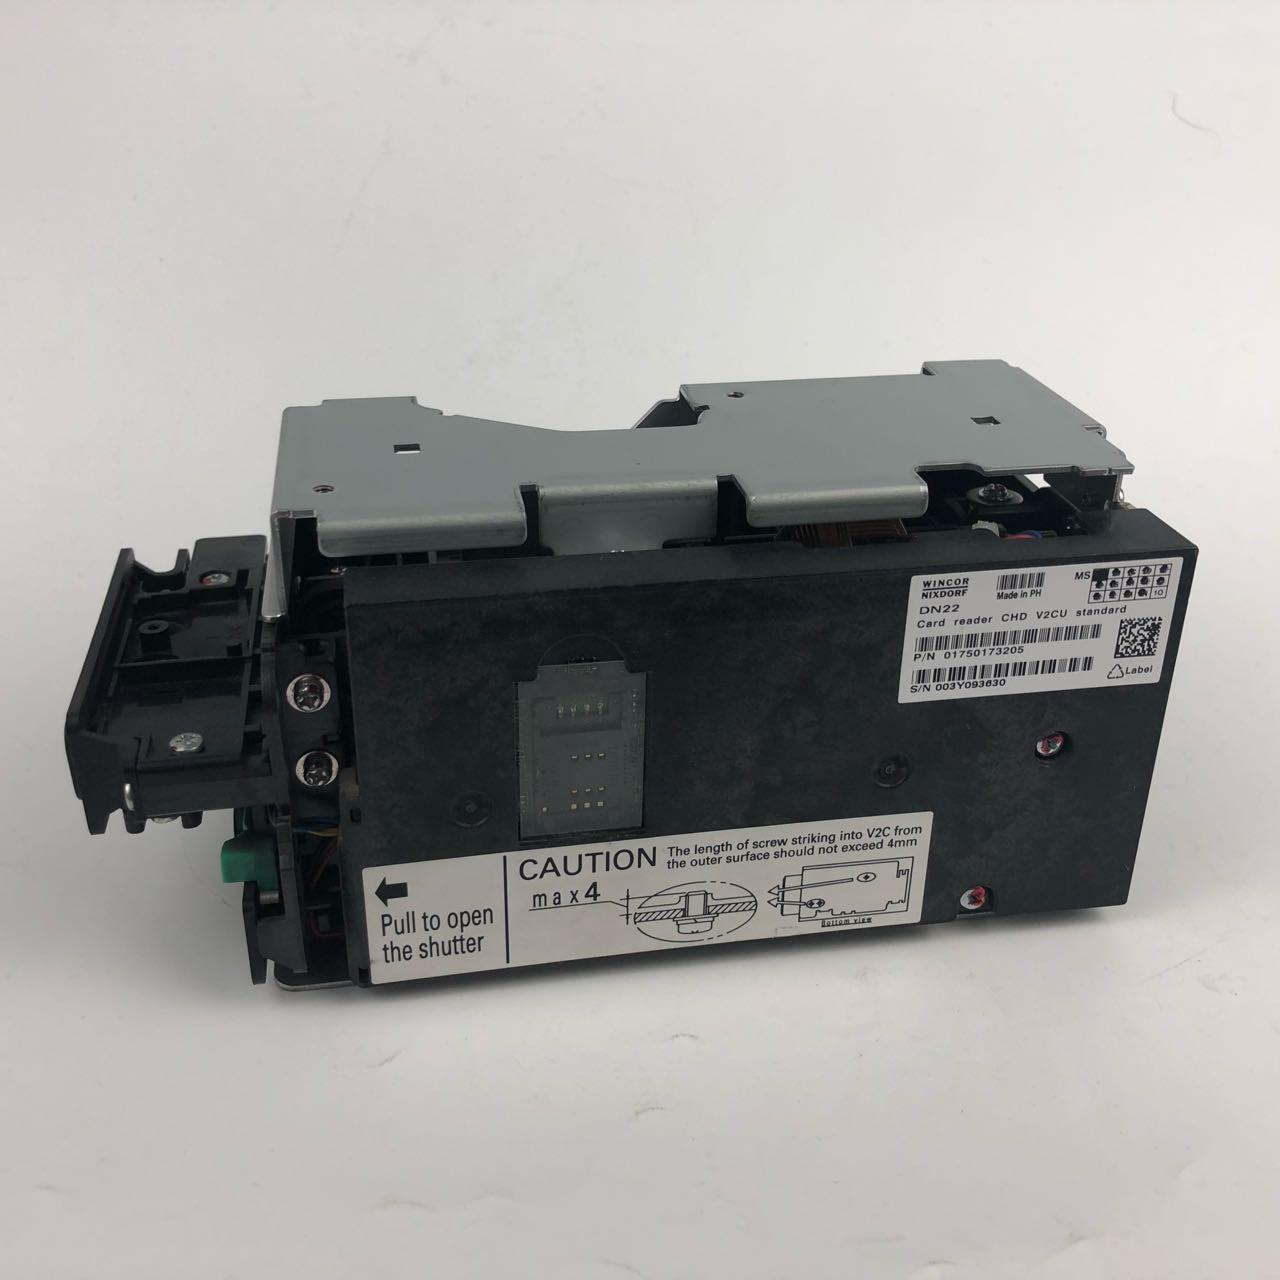 Buy cheap 01750173205 Wincor Nixdorf ATM Parts PC280 V2CU ATM Card Reader 1750173205 from wholesalers